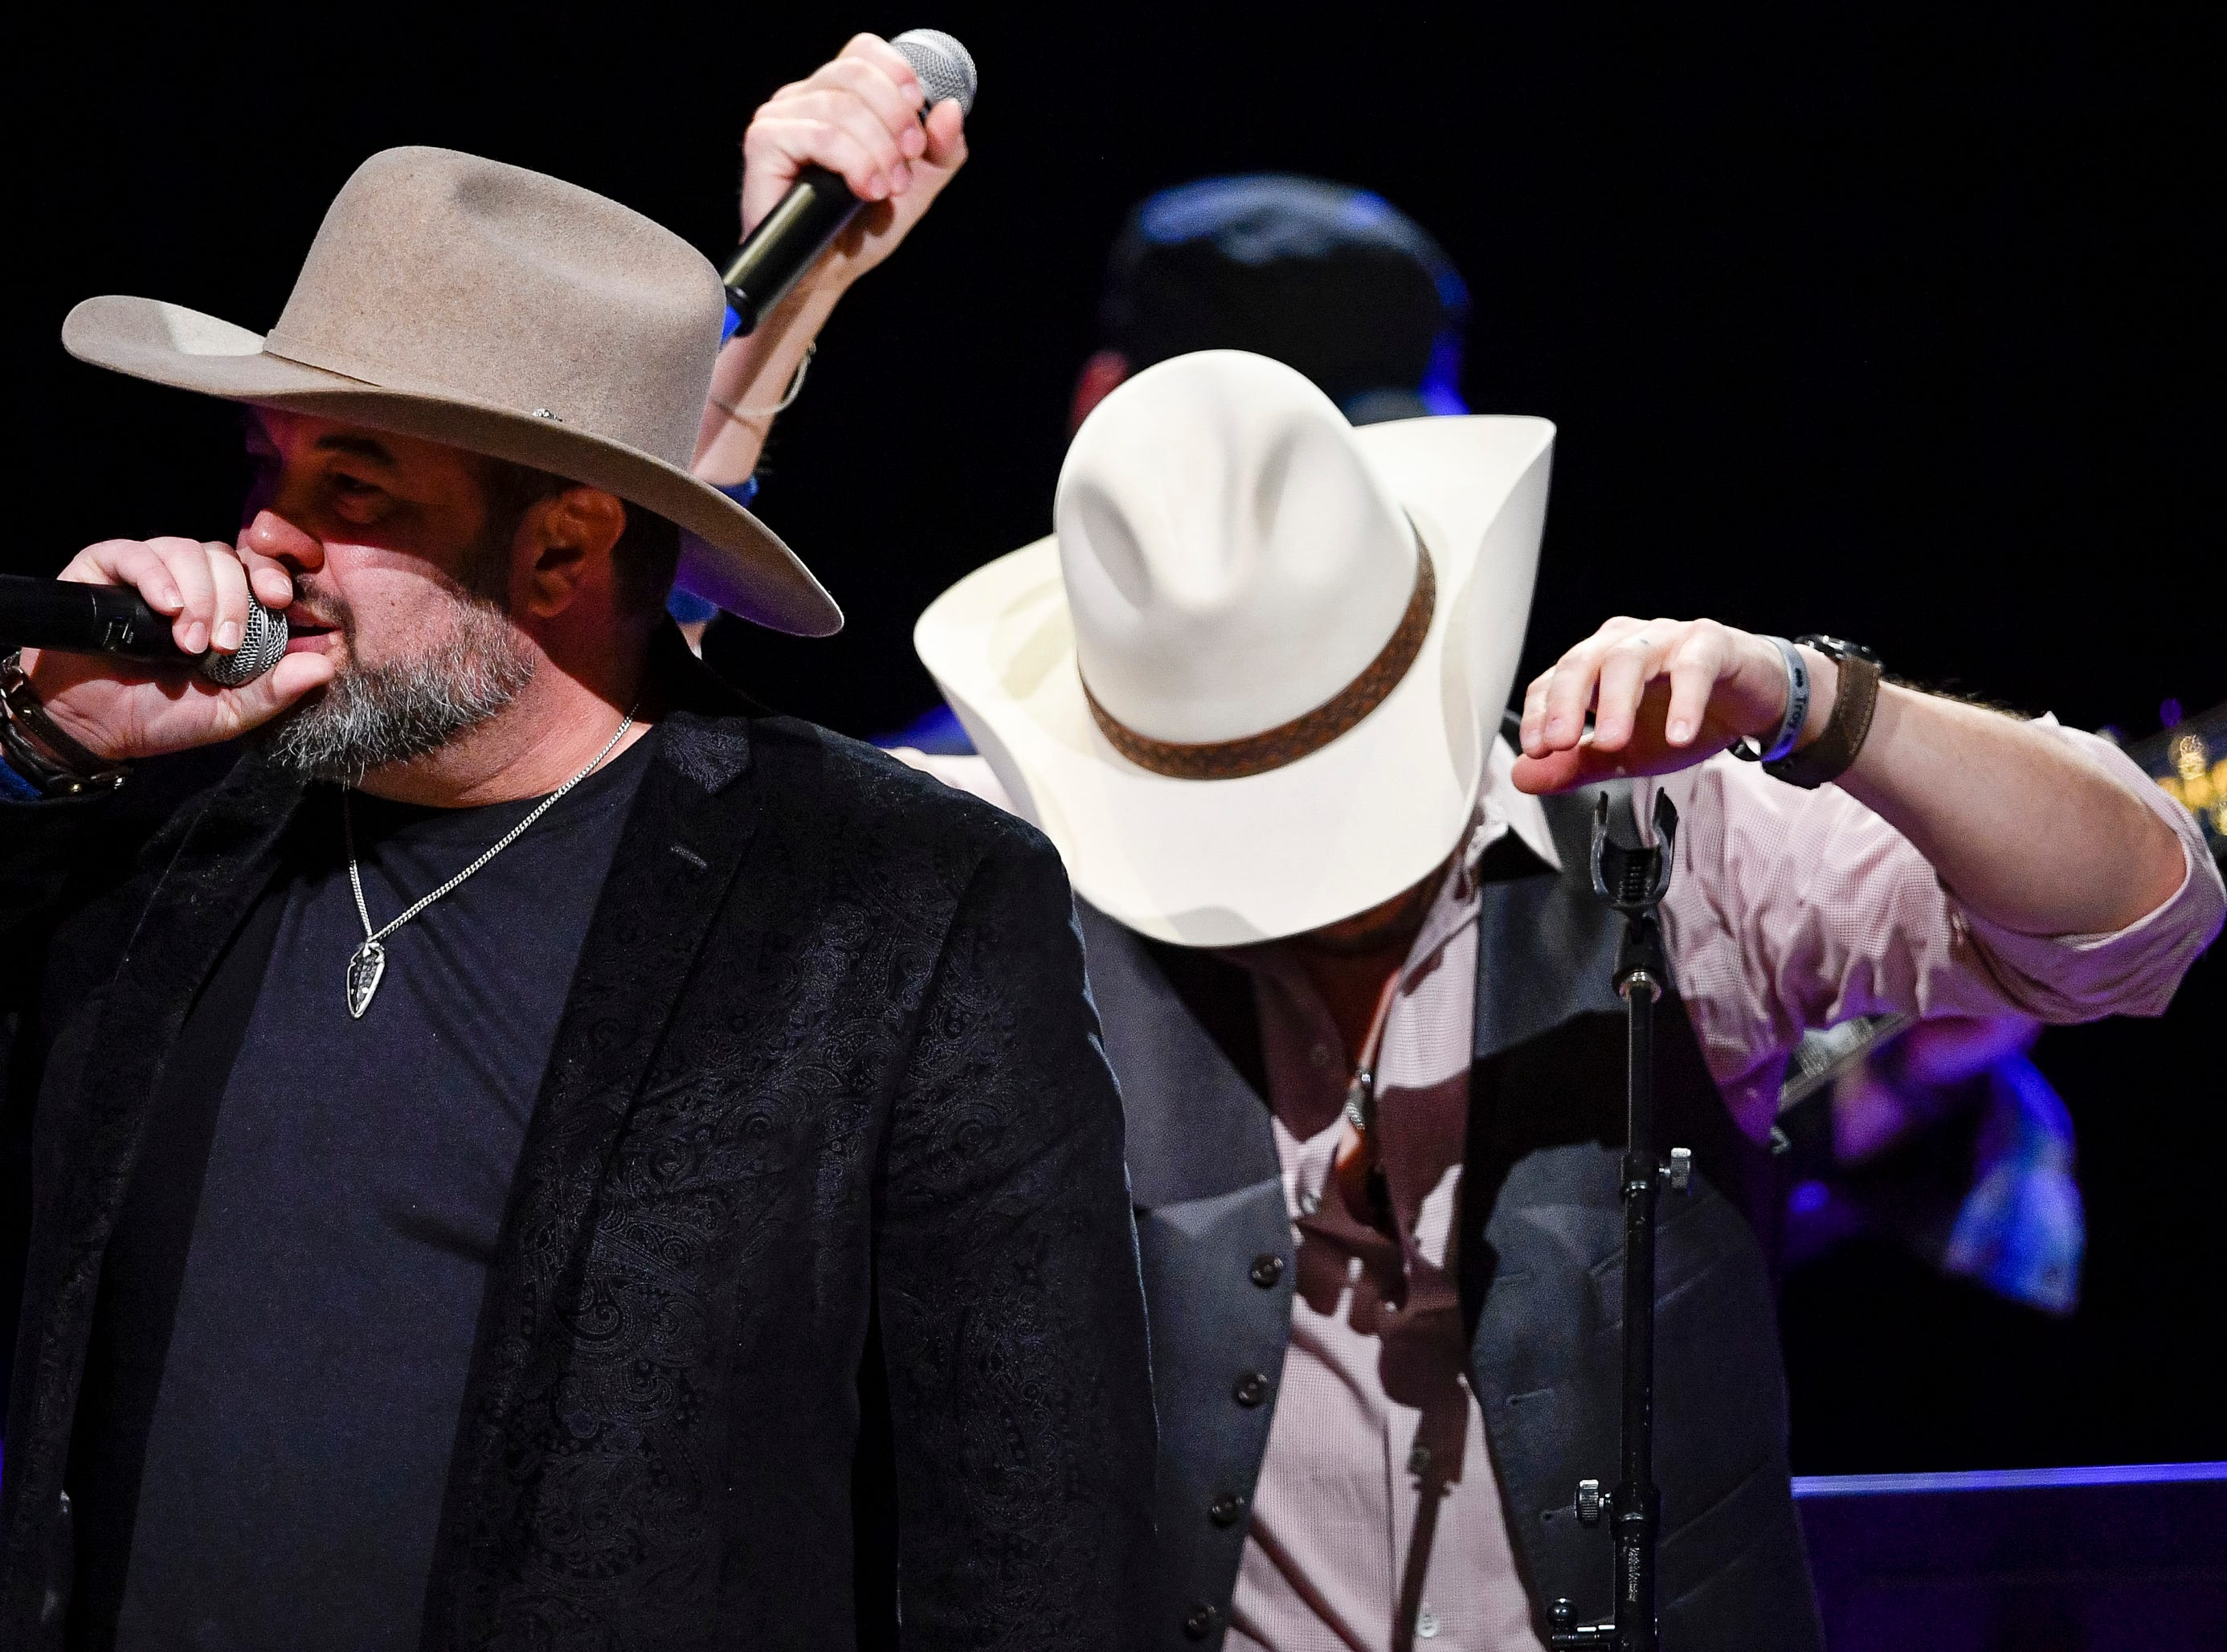 Halfway to Hazard performs during the C'Ya On The Flipside Benefit Concert at the Grand Ole Opry House in Nashville, Tenn., Wednesday, Jan. 9, 2019.